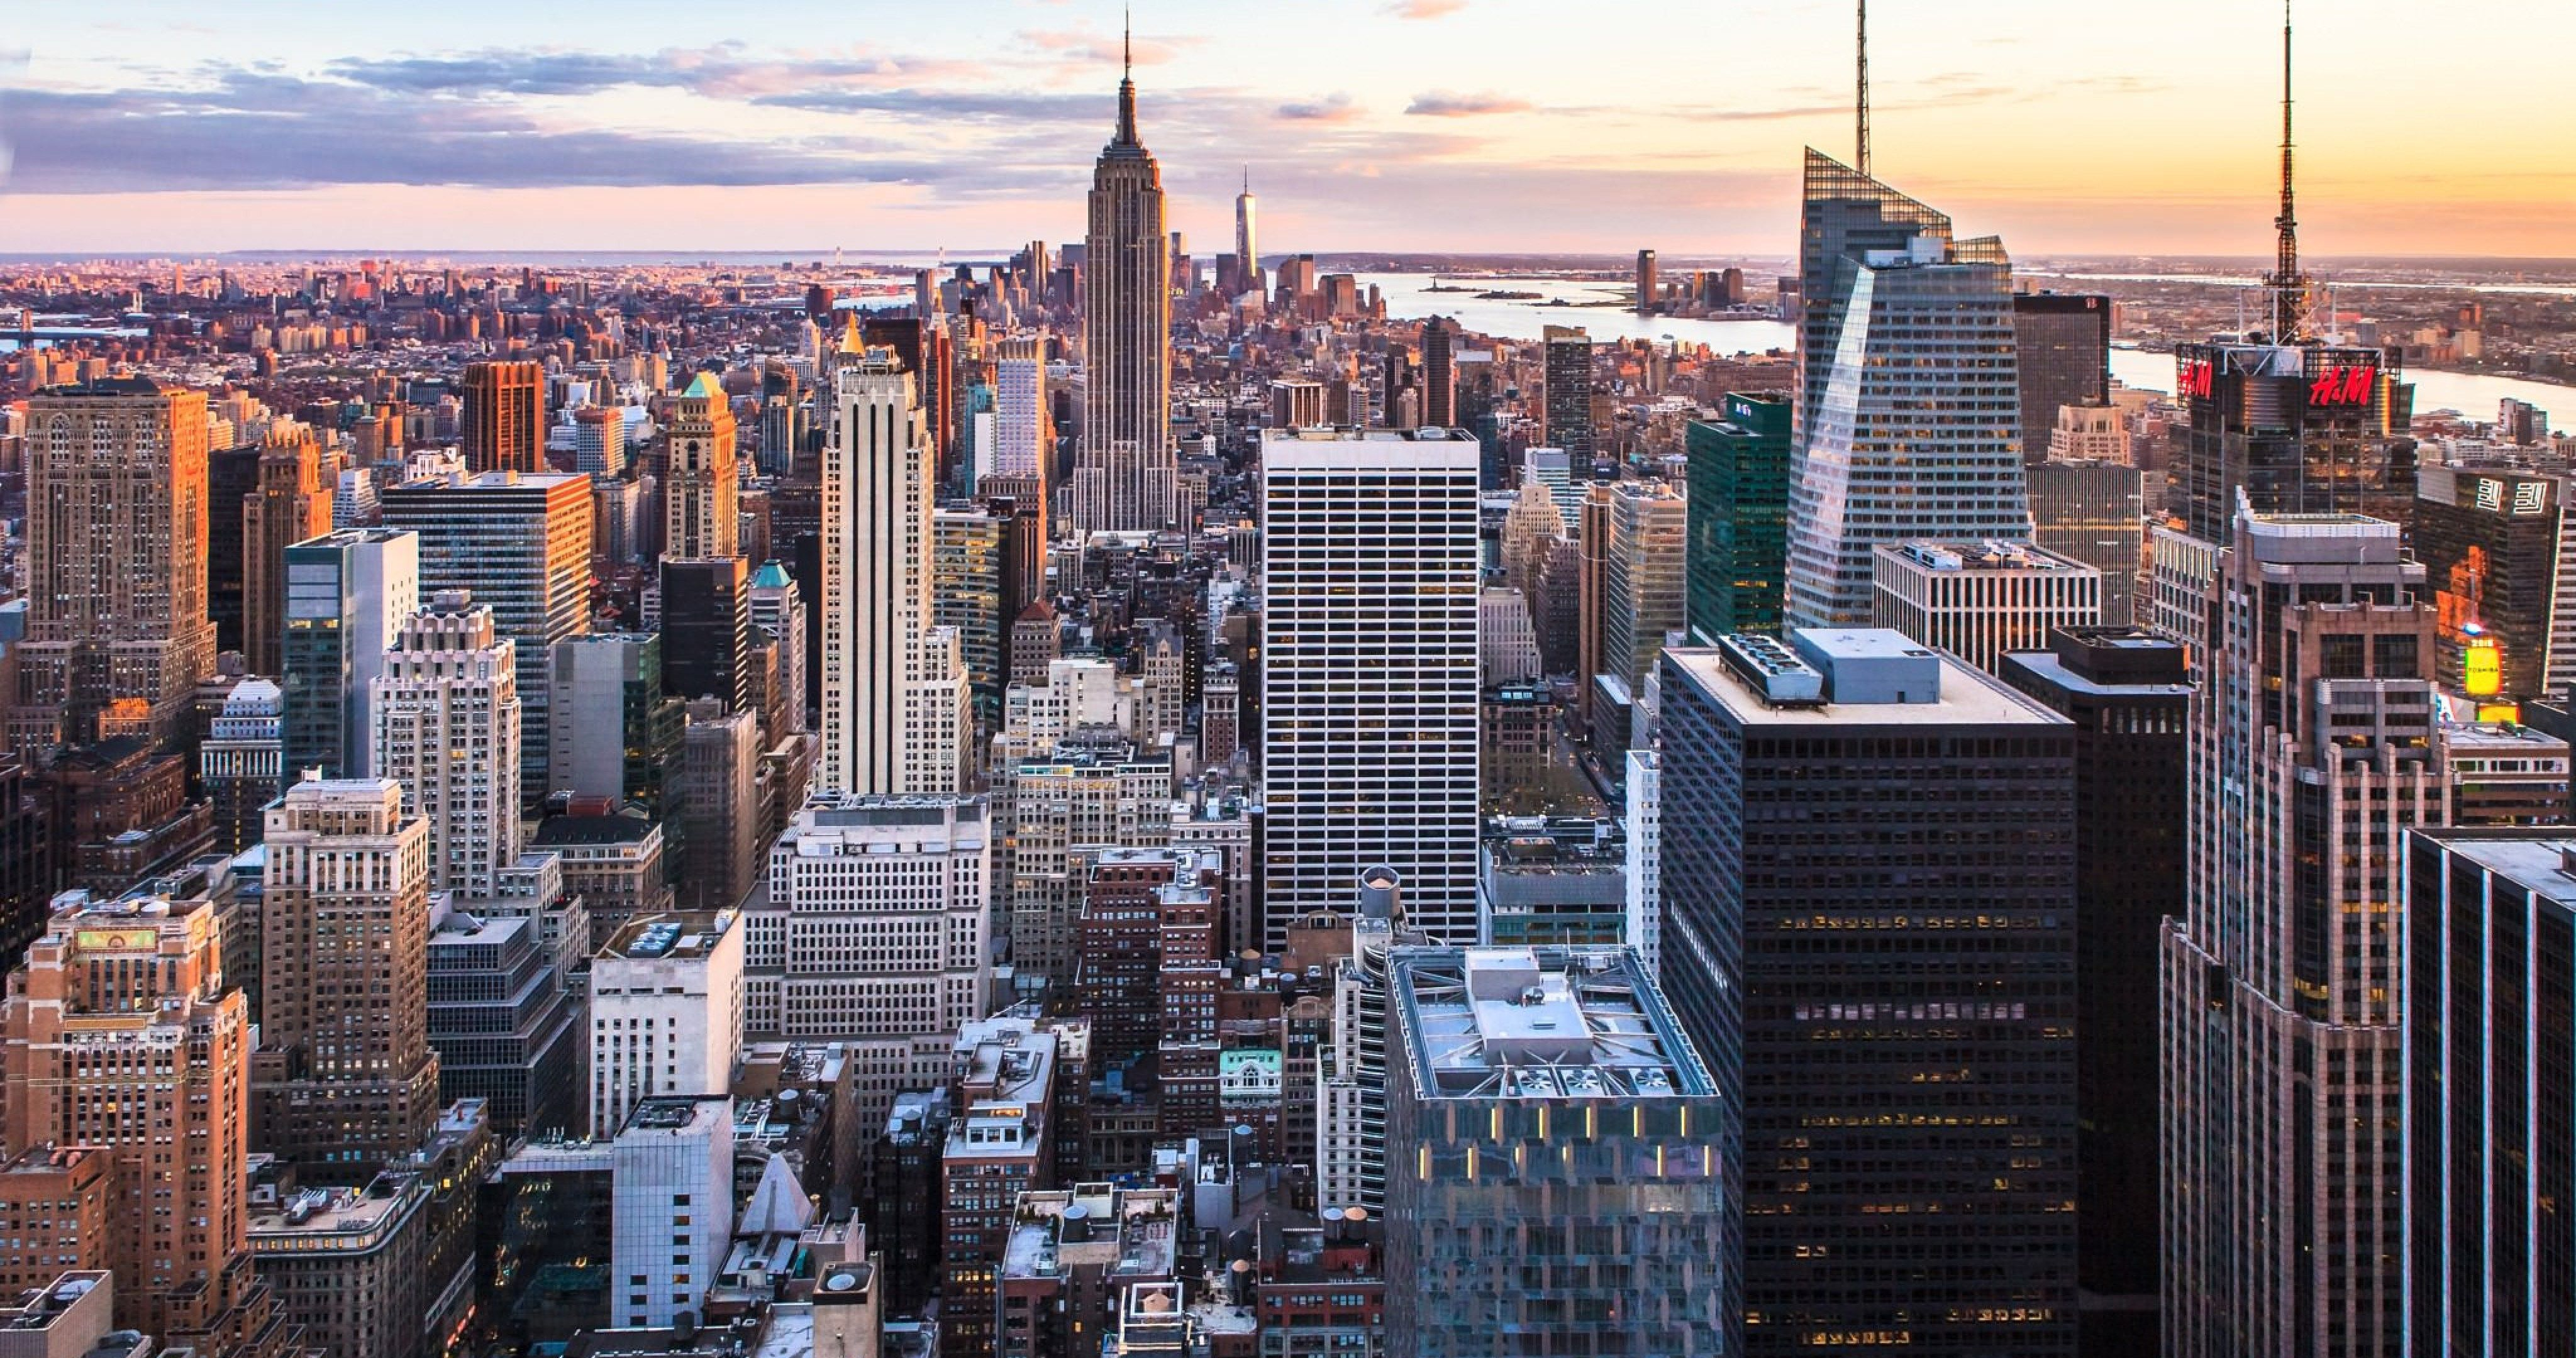 New York City Ultra Hd Wallpapers Wallpaper Cave